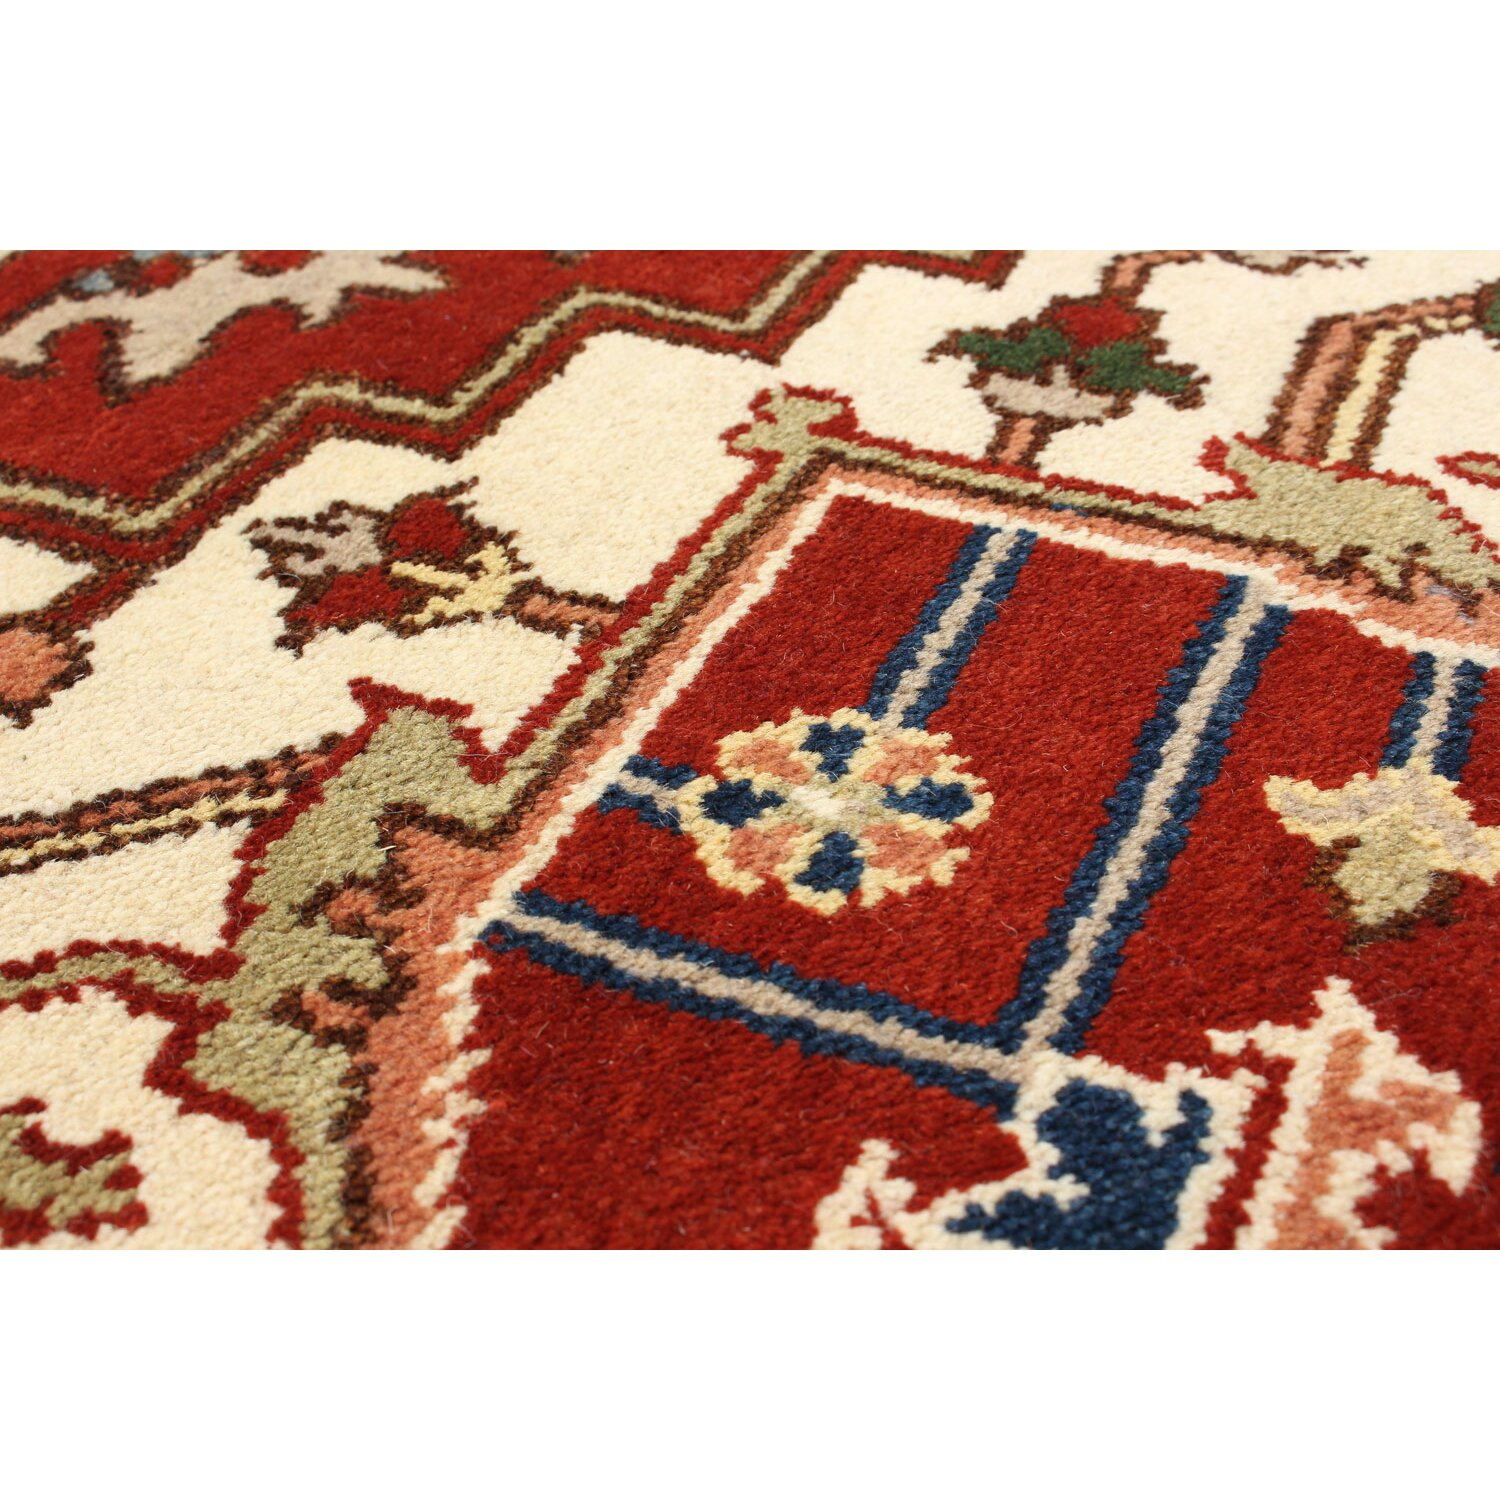 ecarpetgallery hand knotted navy blue red area rug wayfair